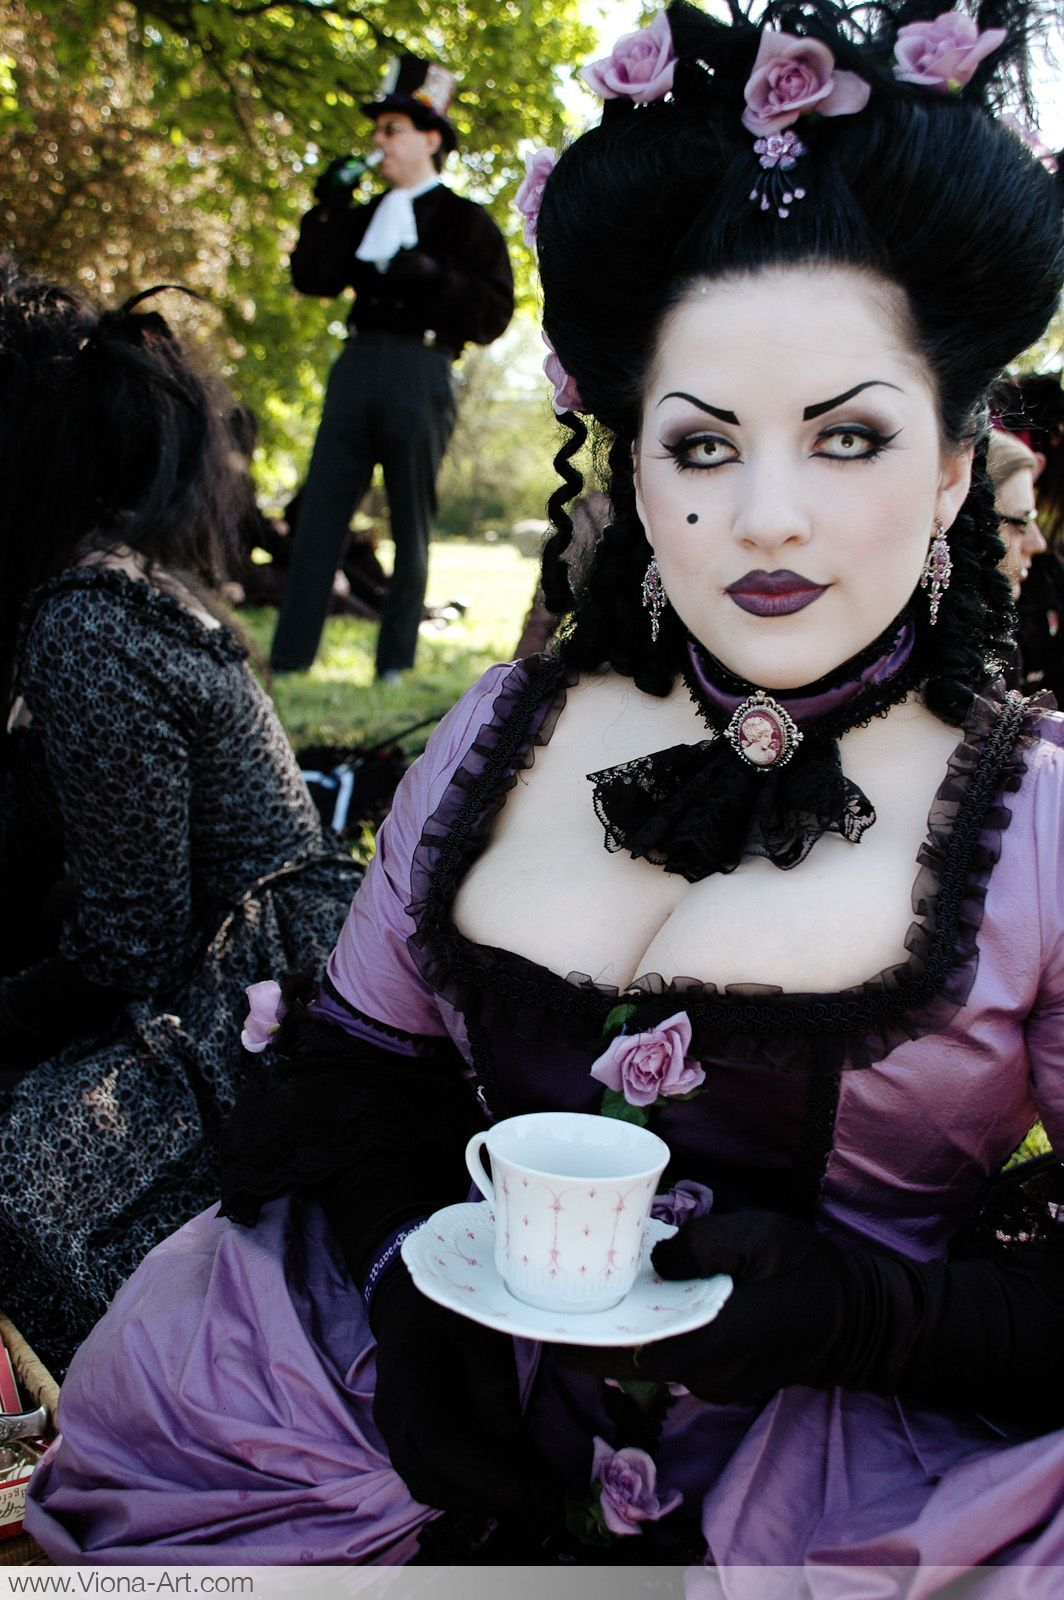 This lady is totally one of my biggest goth style inspirations. She rocks the black-on-lilac look like no other I've ever seen.